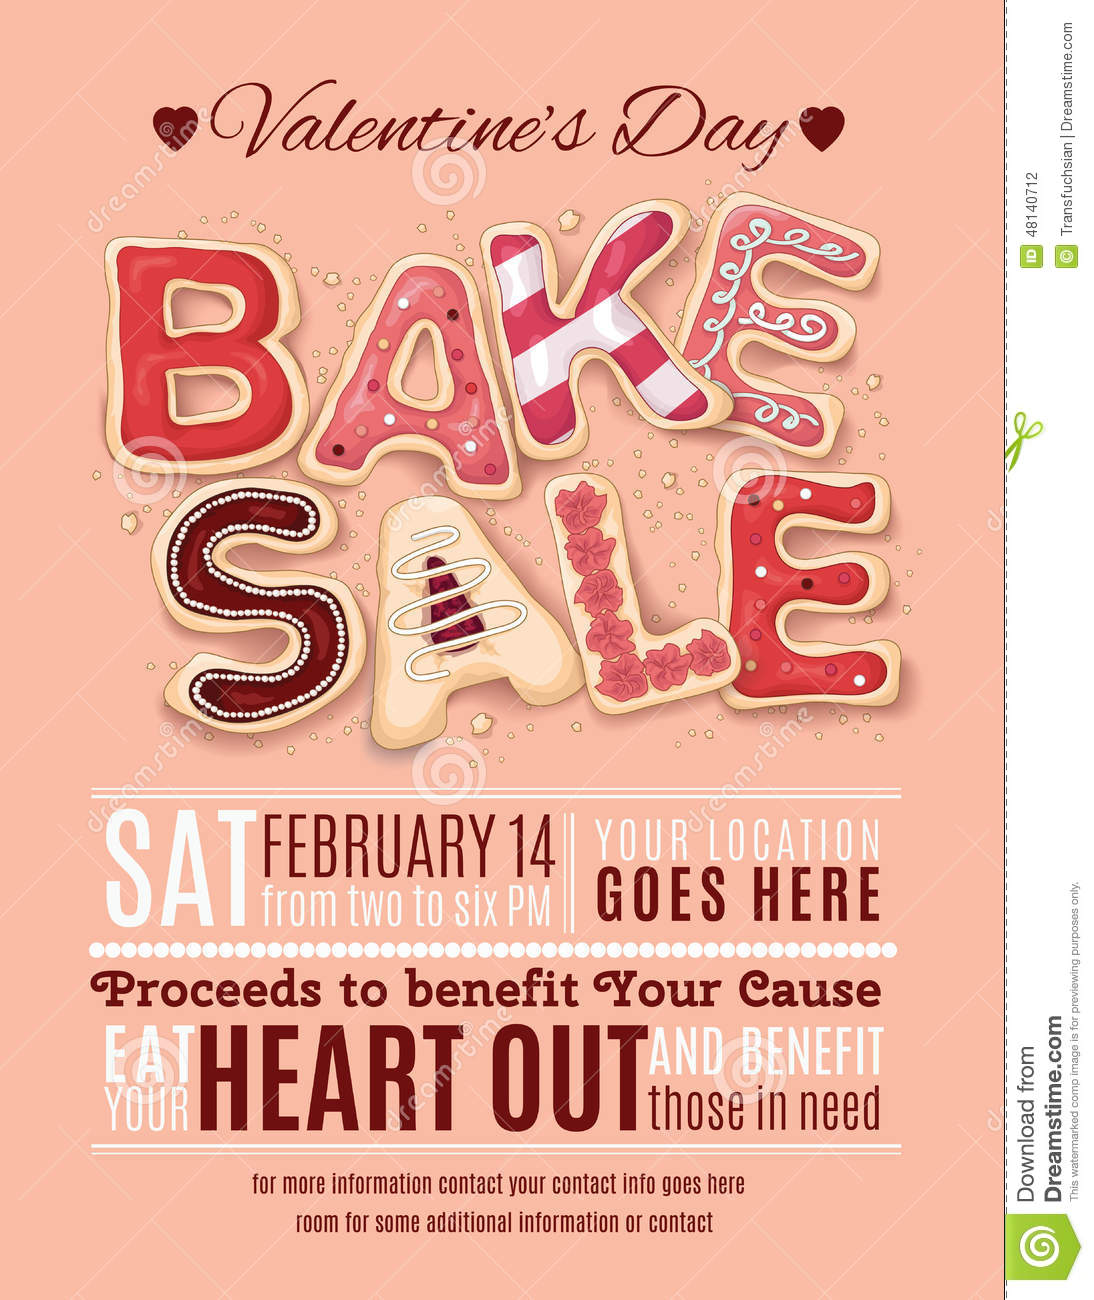 Delightful Valentines Day Bake Sale Flyer Template Pictures